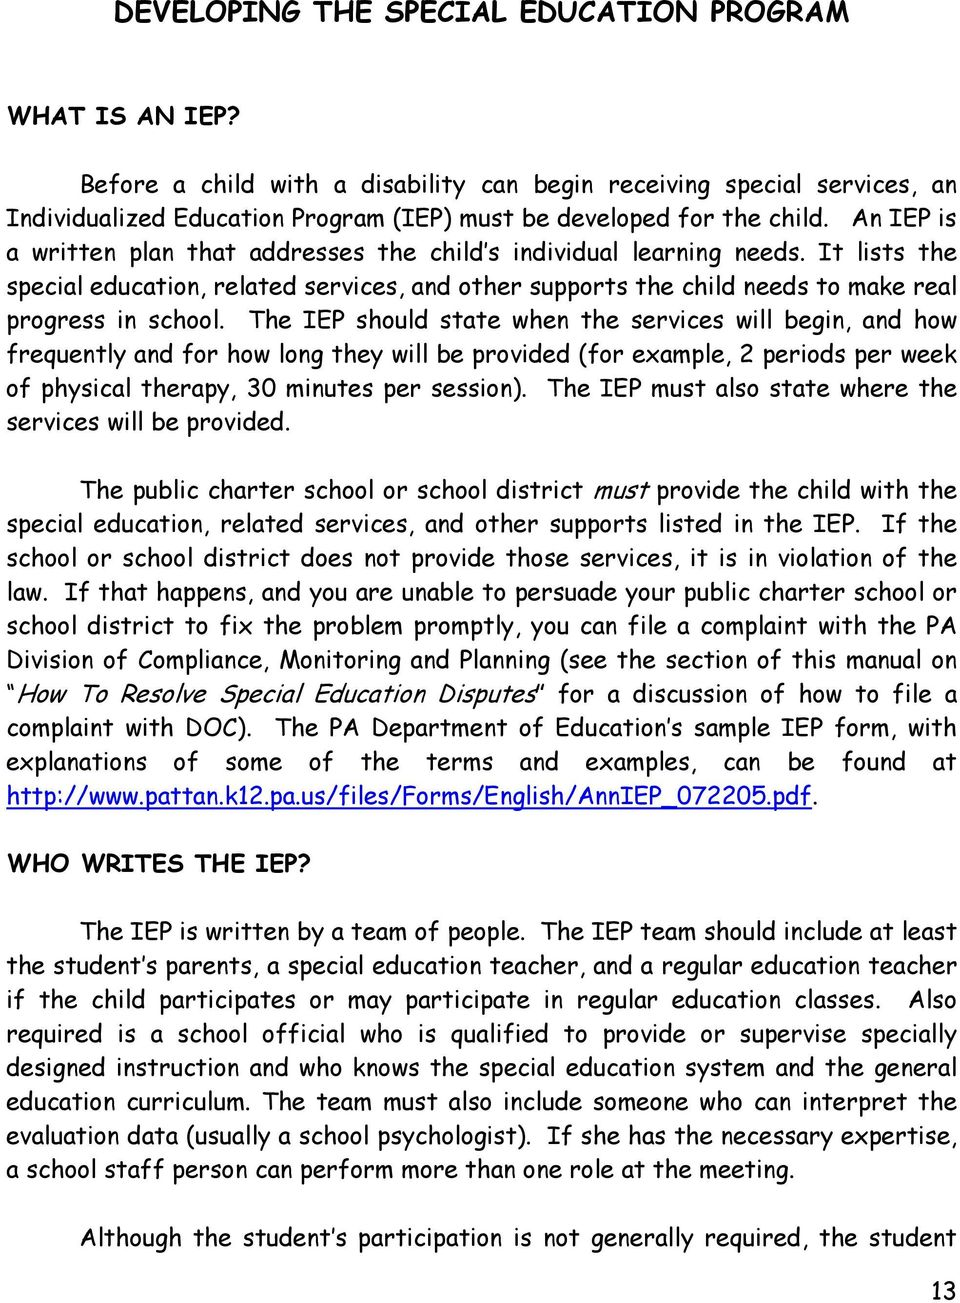 An IEP is a written plan that addresses the child s individual learning needs. It lists the special education, related services, and other supports the child needs to make real progress in school.